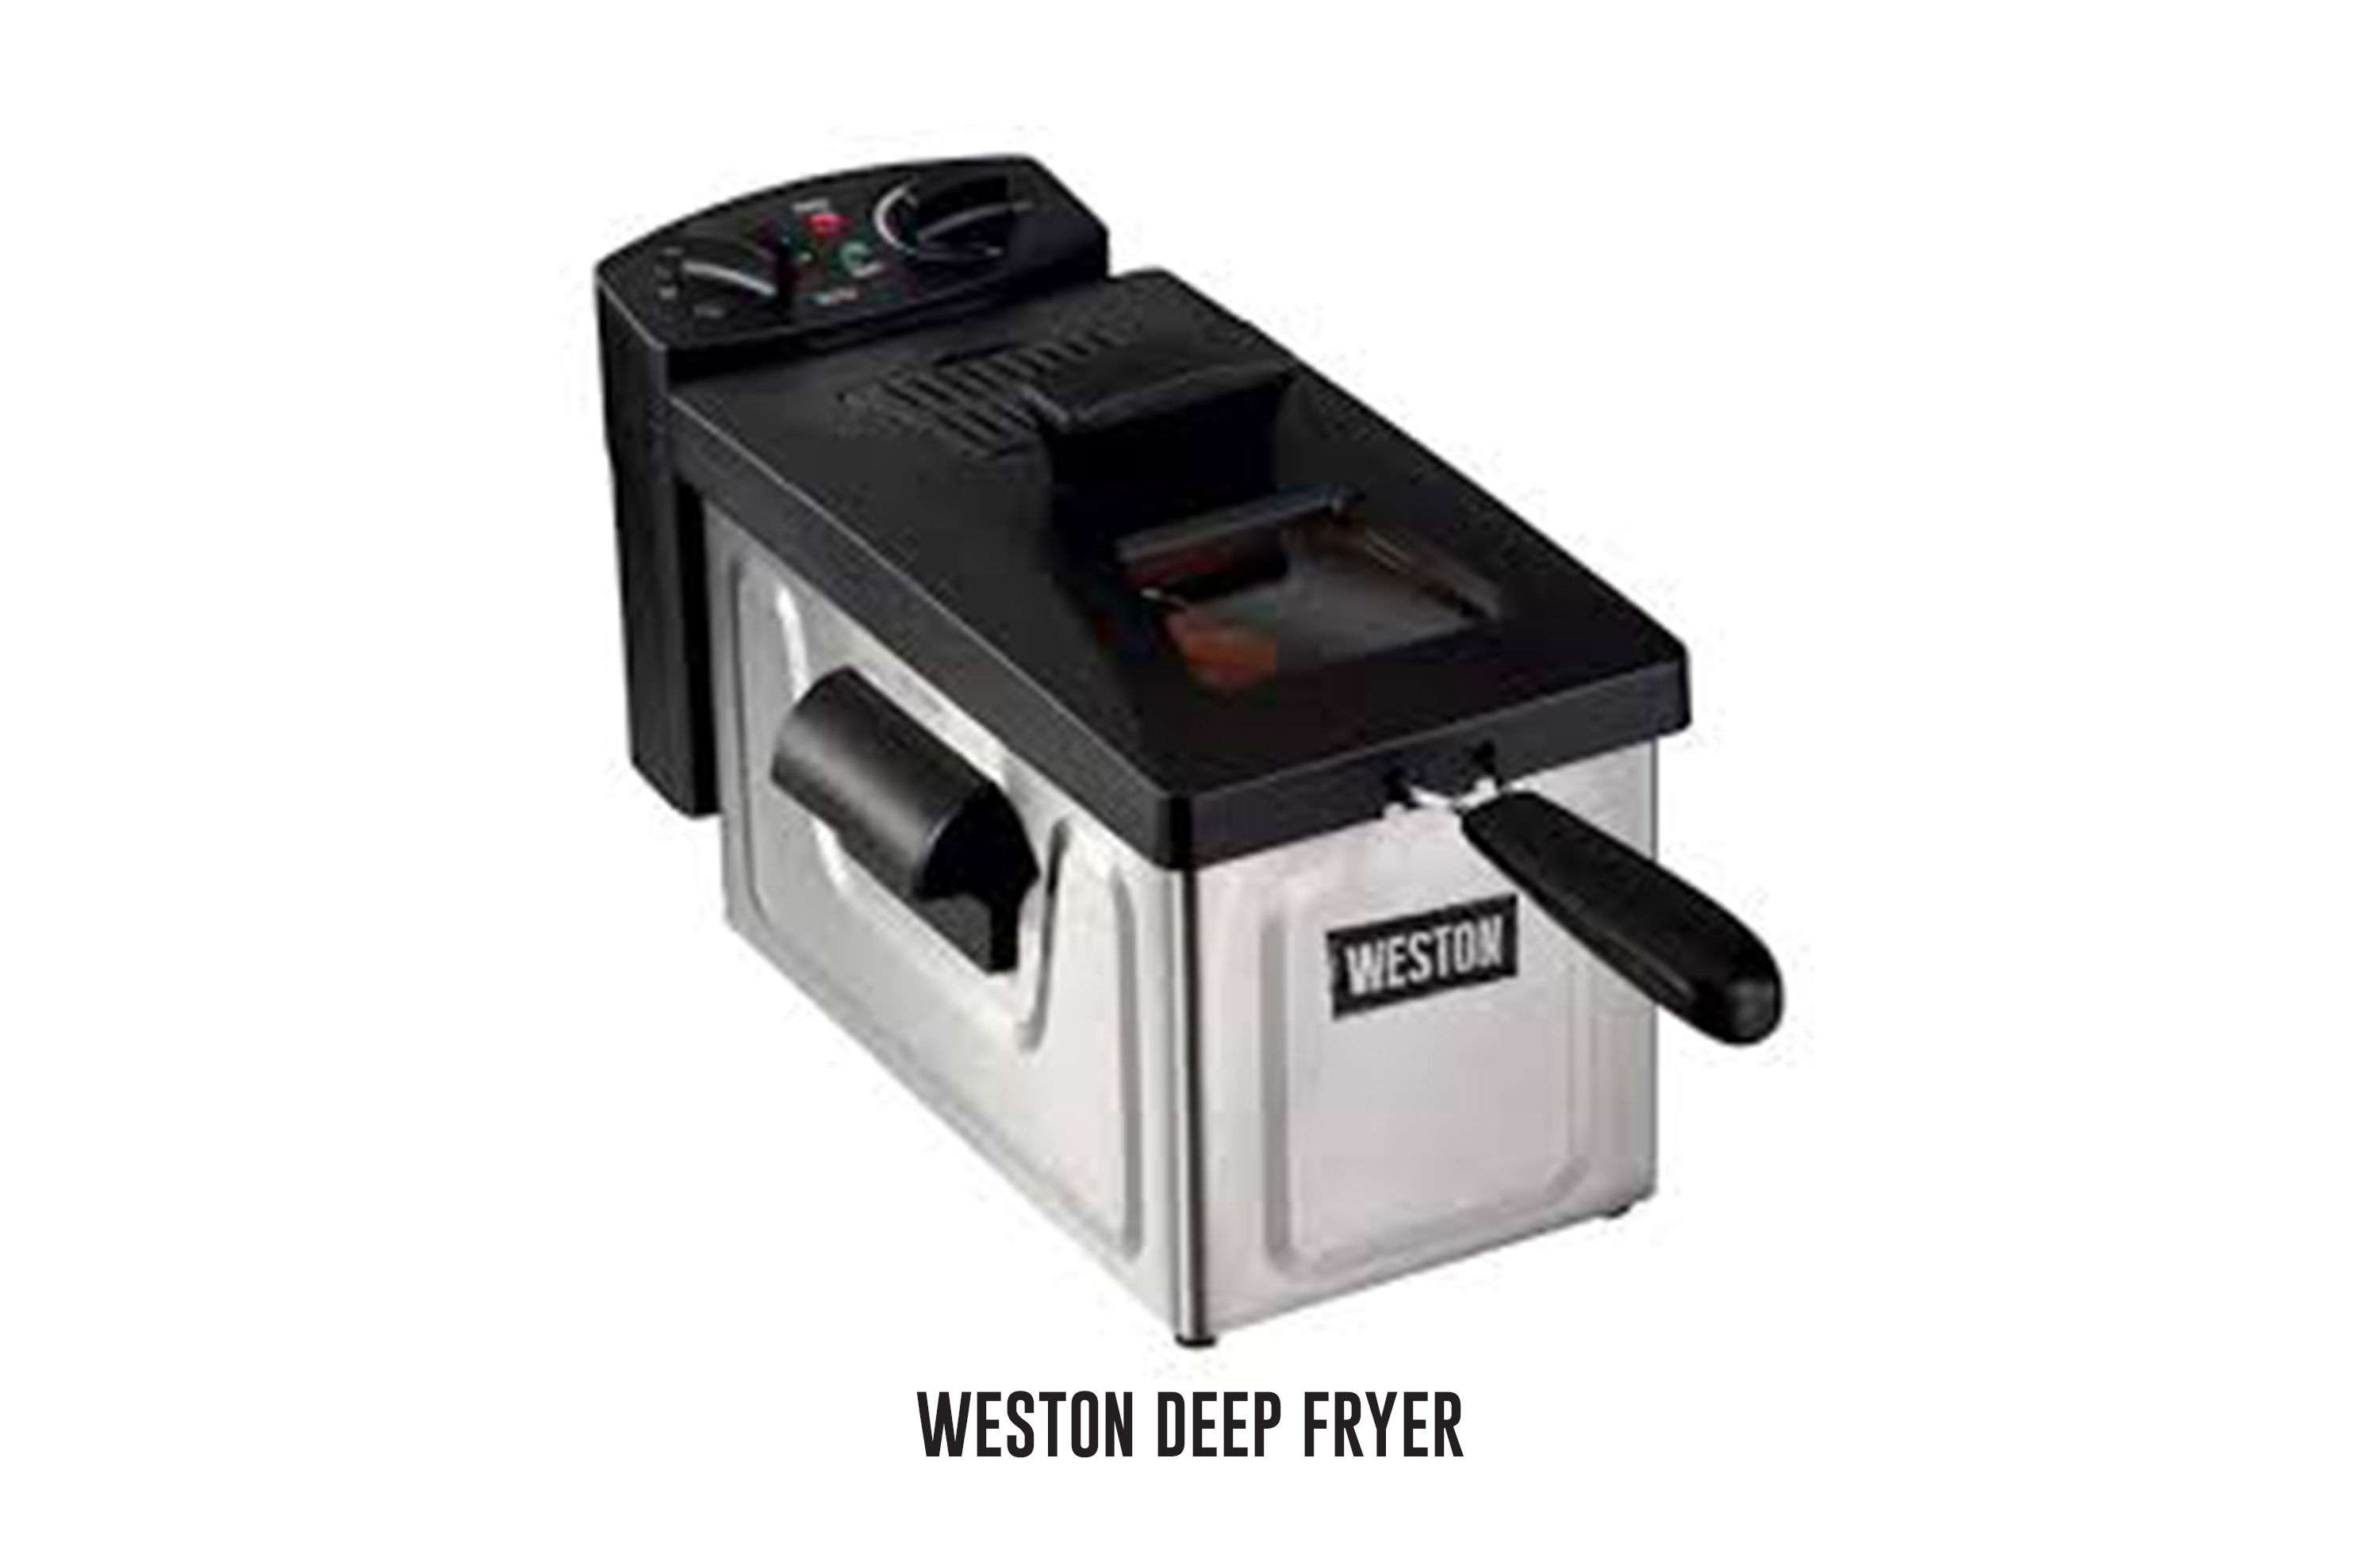 Weston Deep fryer